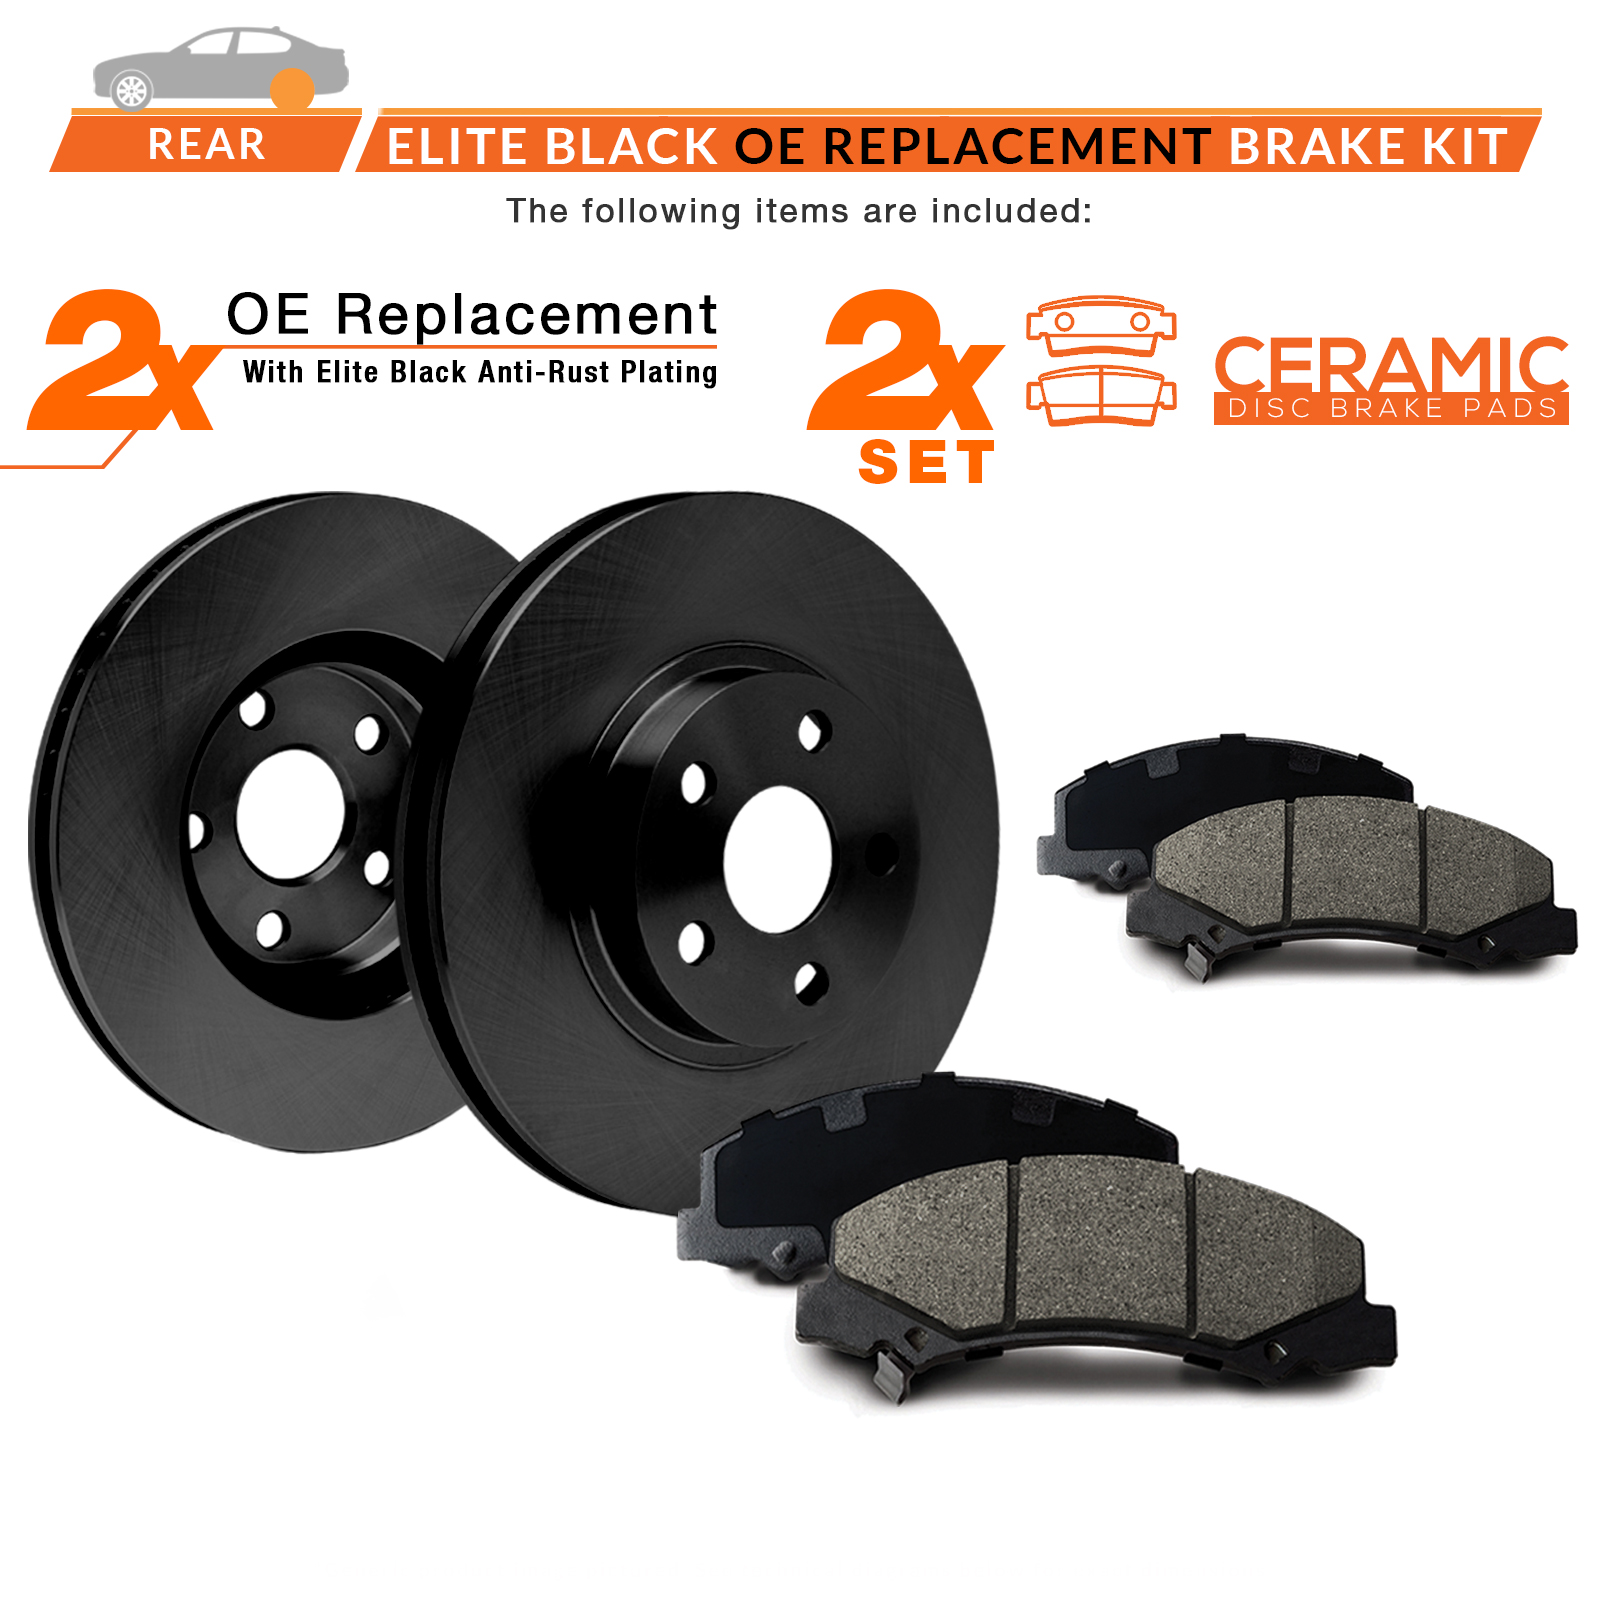 Rear-Rotors-w-Ceramic-Pads-Elite-OE-Brakes-2002-2005-Explorer-Mountaineer thumbnail 2